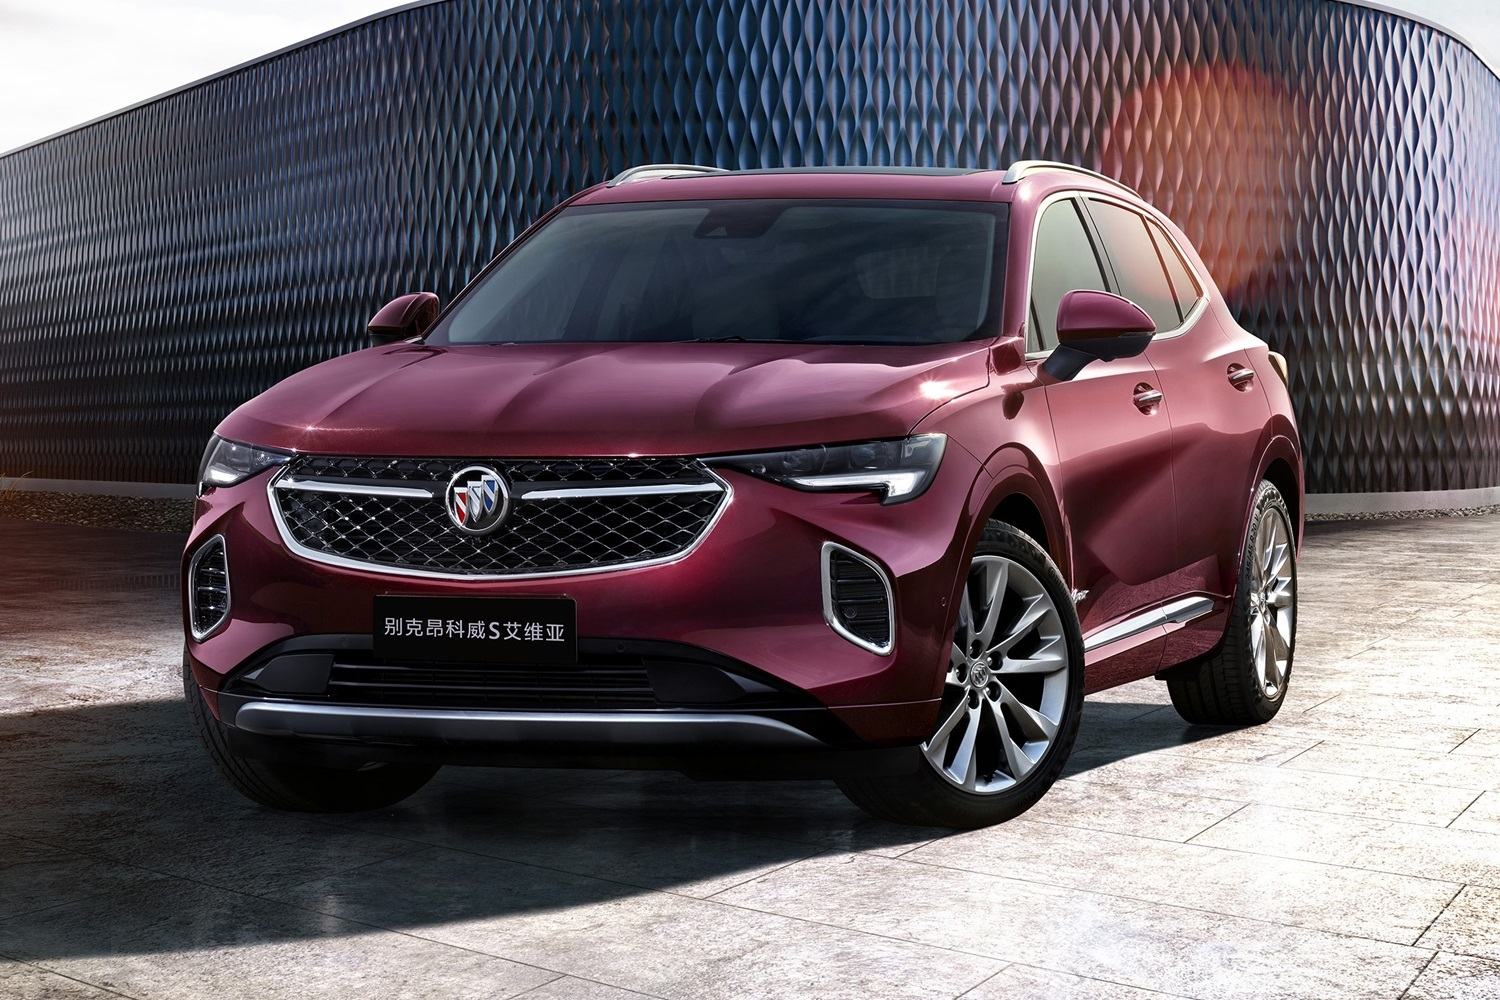 Range-Topping 2021 Buick Envision Avenir Revealed | Gm Authority New 2021 Buick Envision Engine Options, Fwd, Features